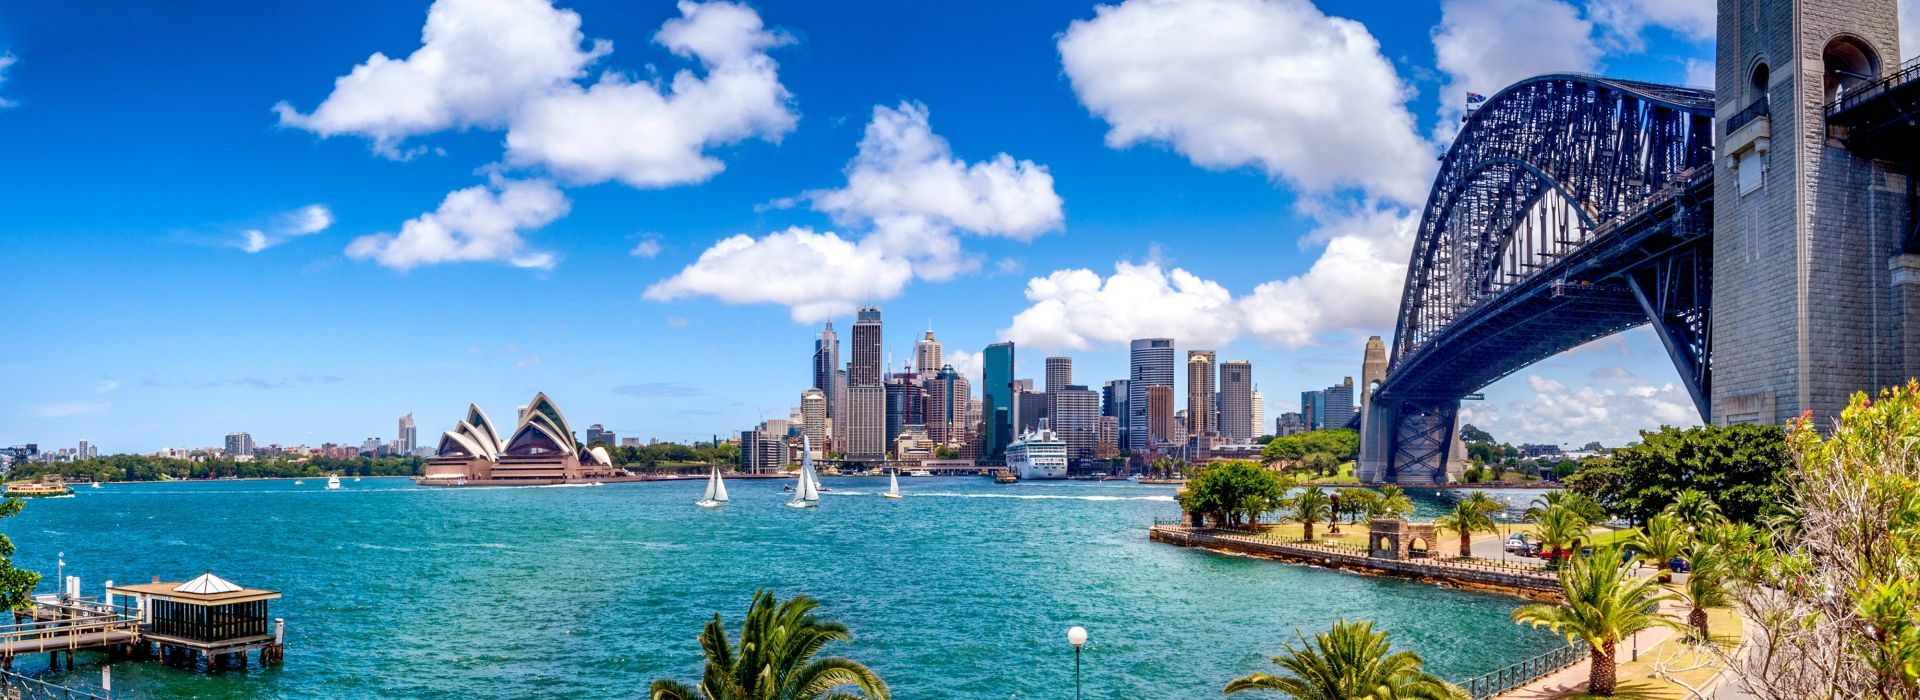 Sightseeing Tours in Perth